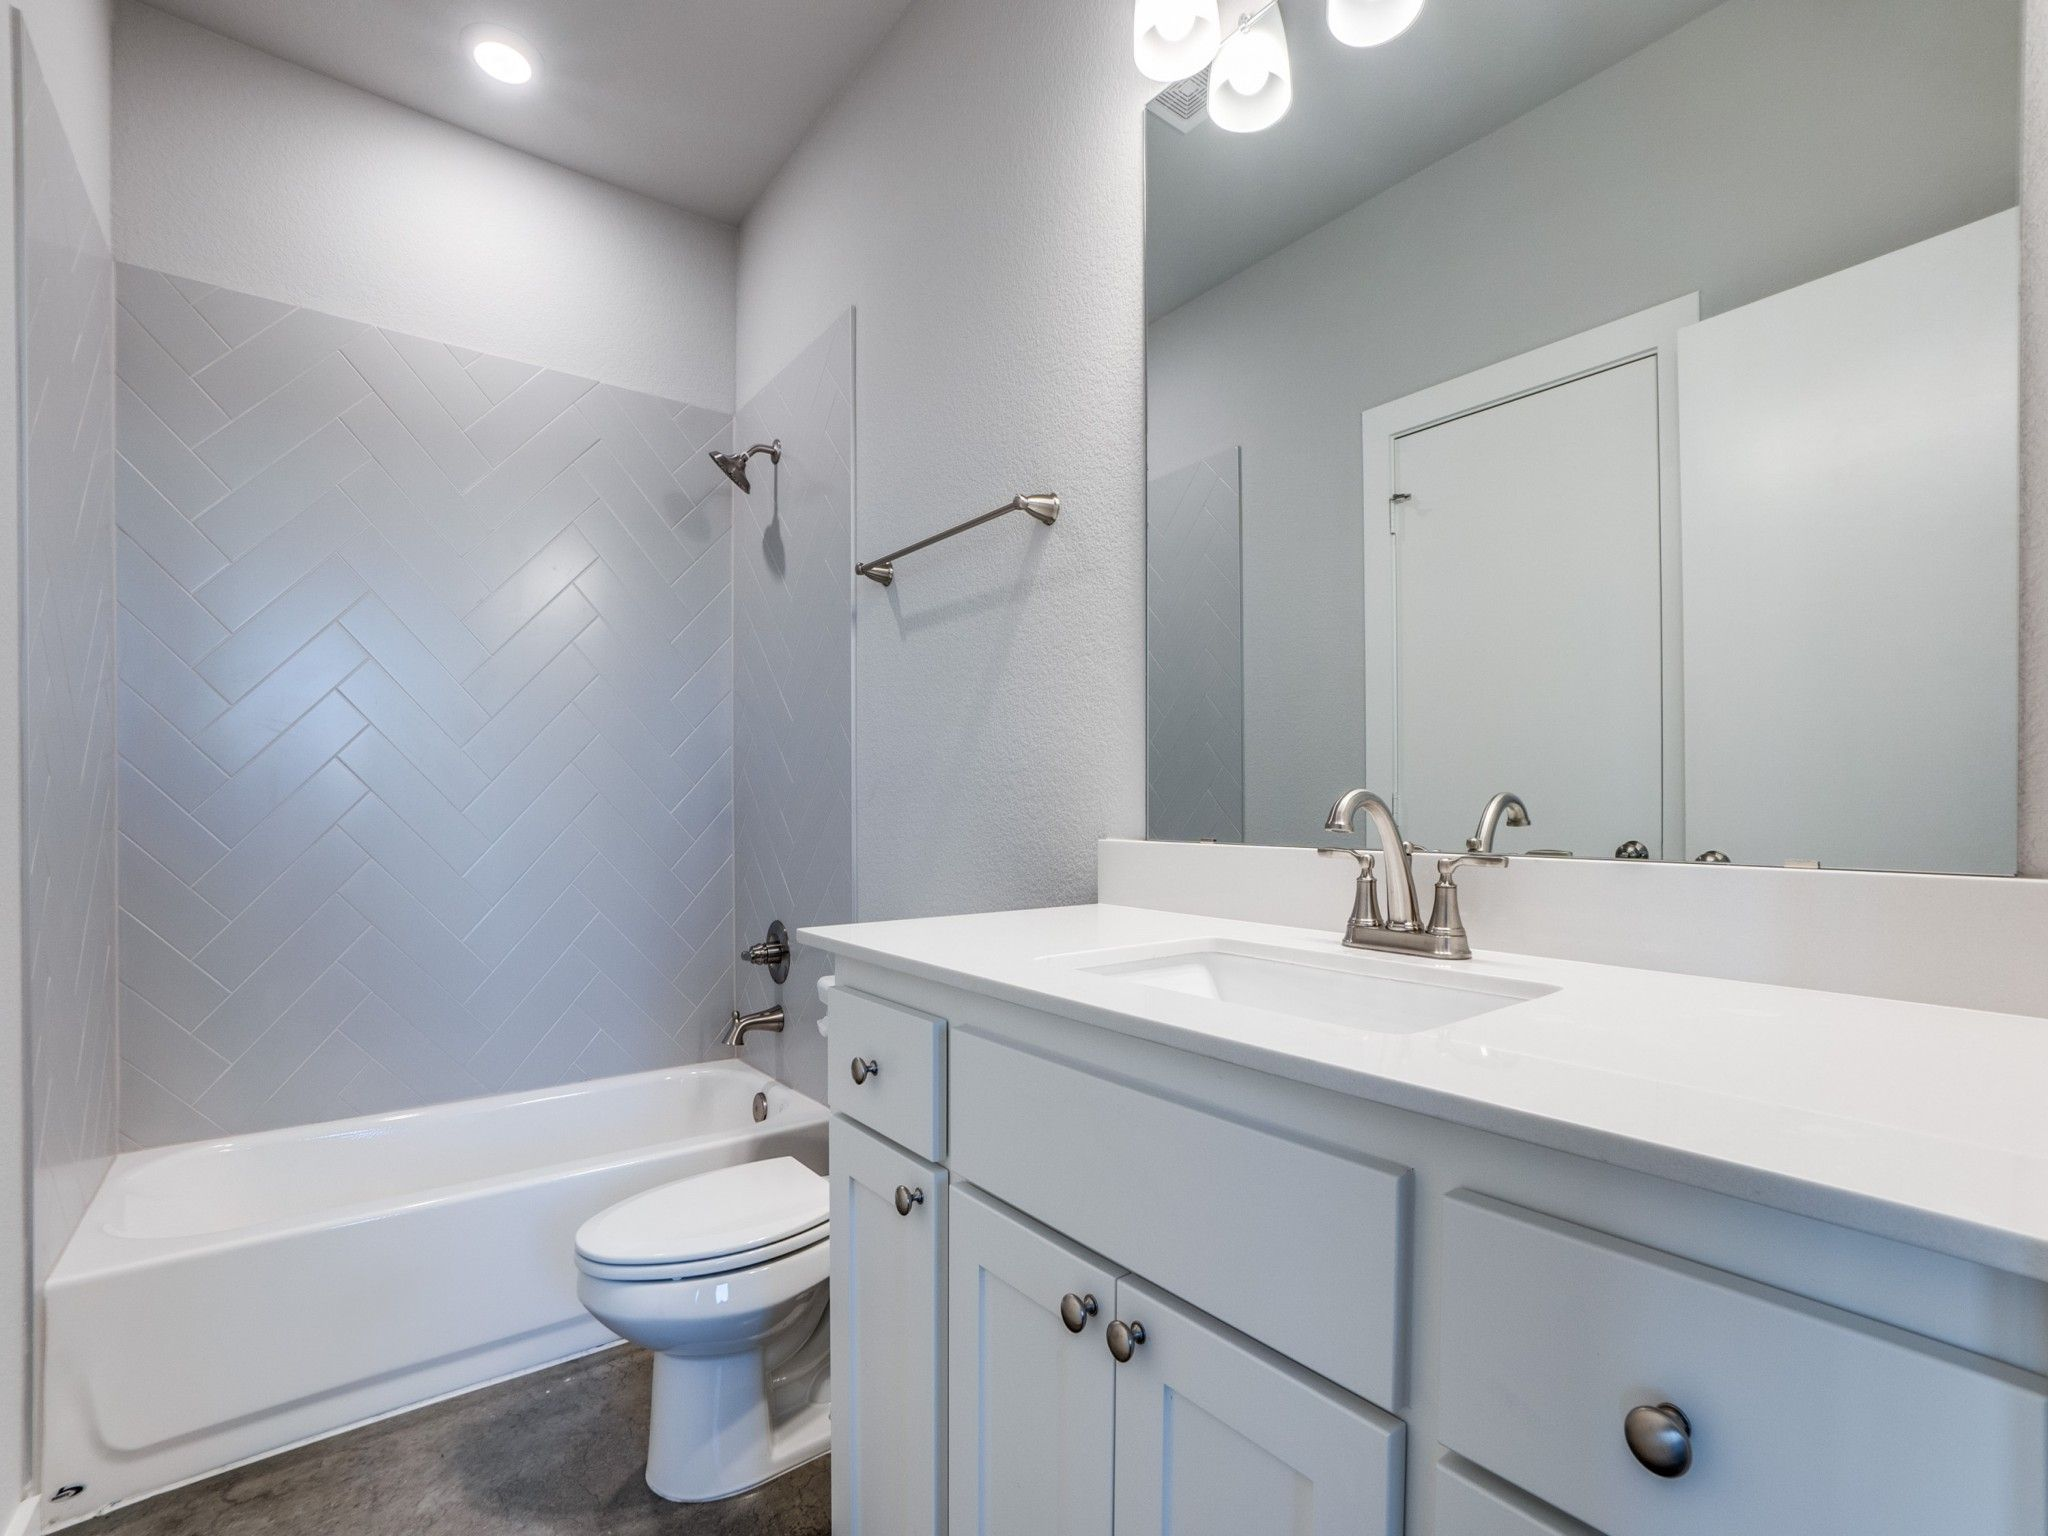 Bathroom featured in the Laurel By Centre Living Homes in Dallas, TX